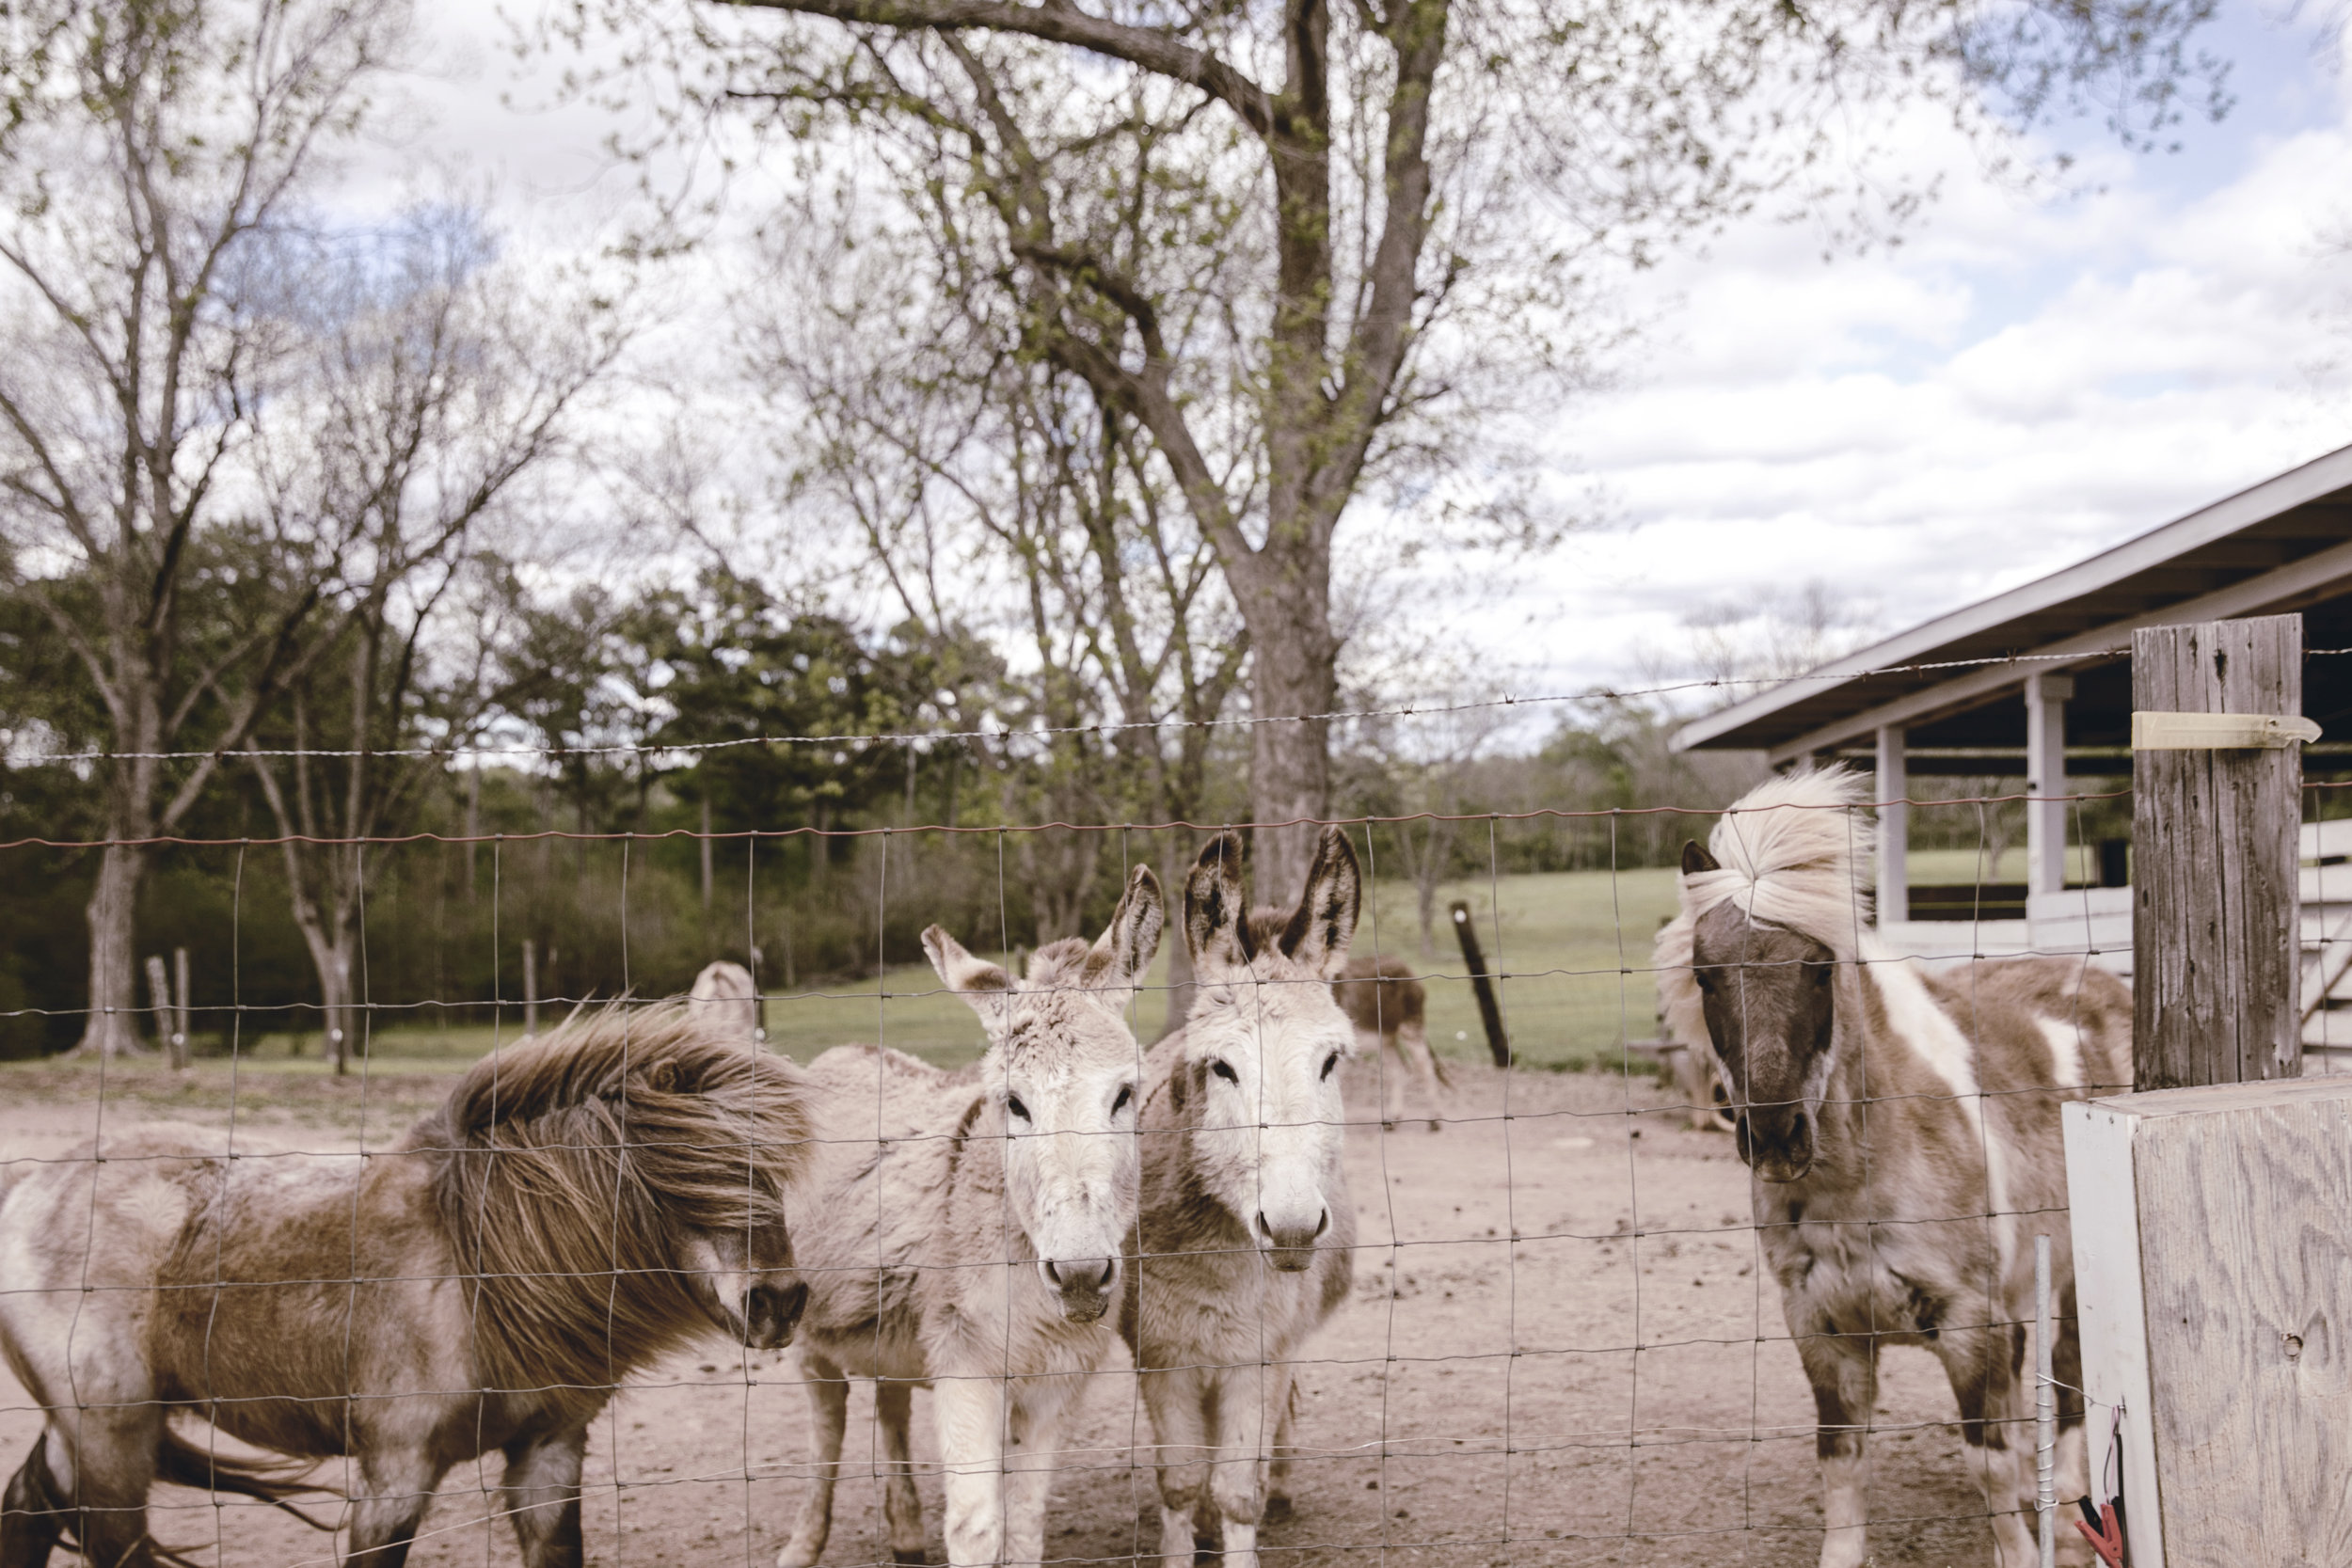 ponies and donkeys at the farm / heirloomed